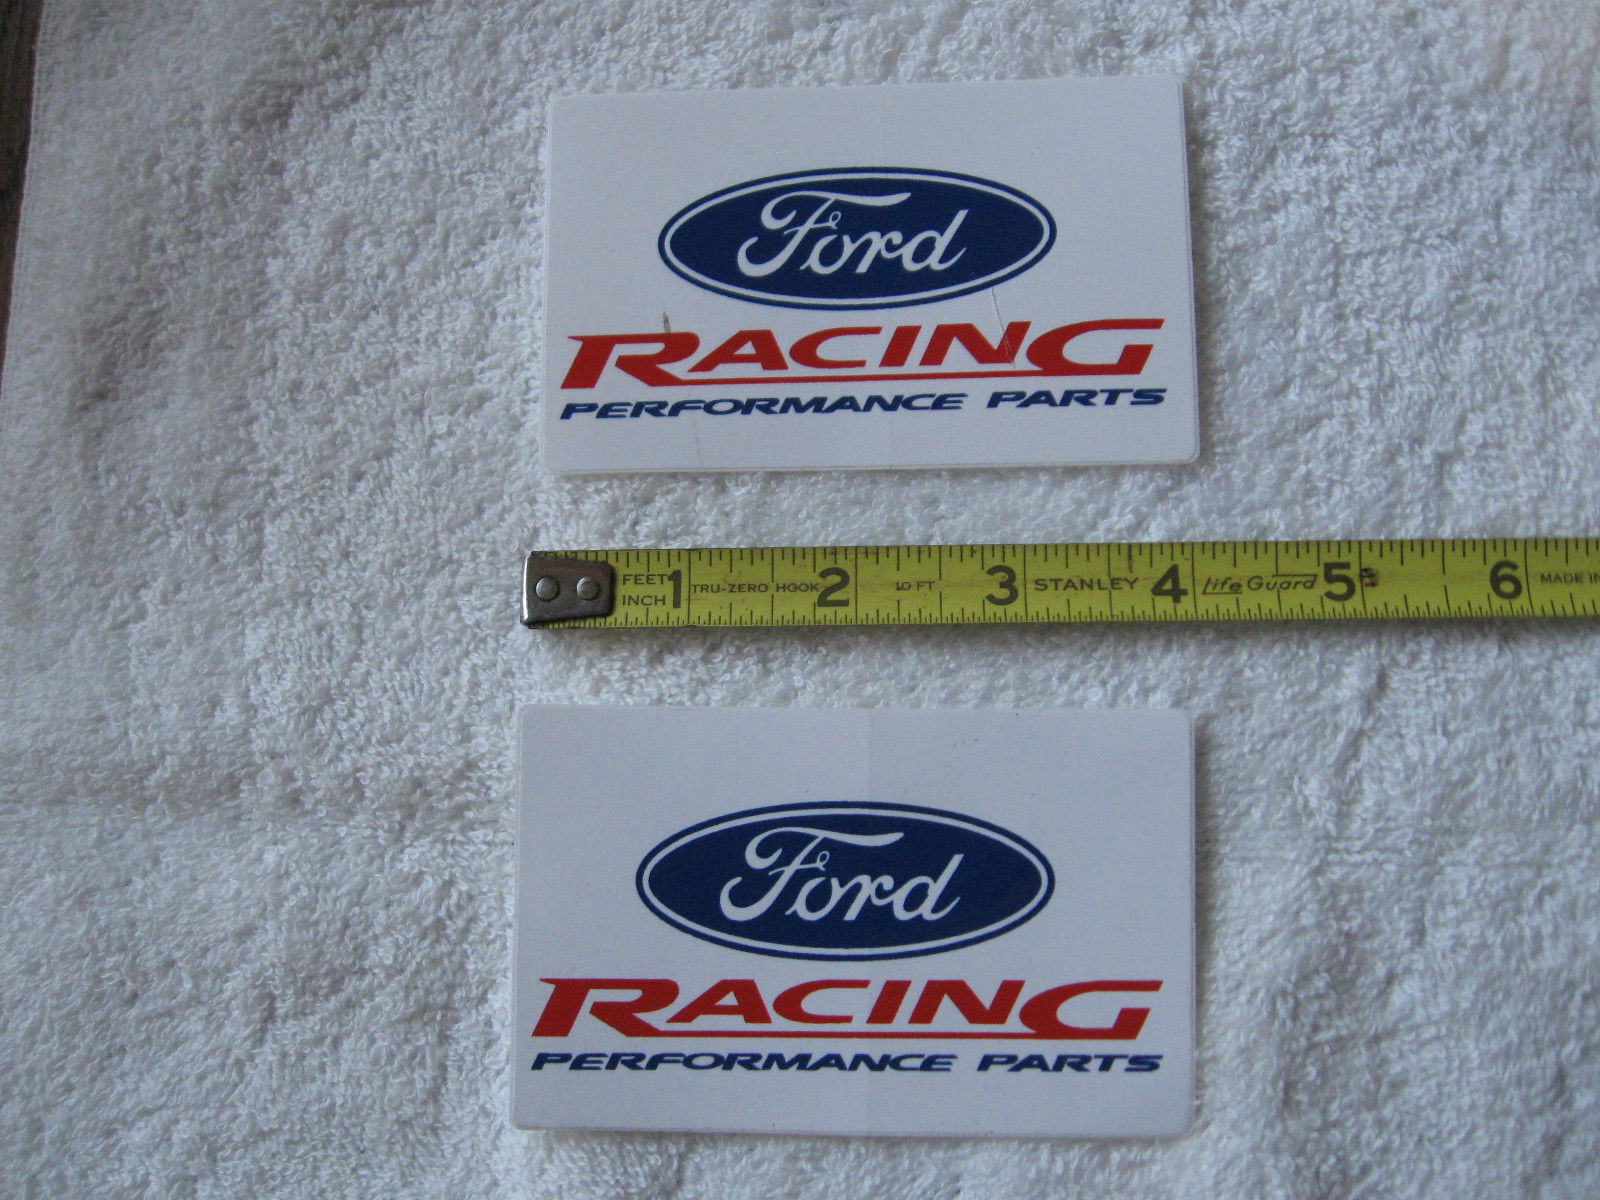 FORD RACING-NOS DECALS-AUTOMOTIVE COLLECTIBLE-DISPLAY-RESTORATION!!!